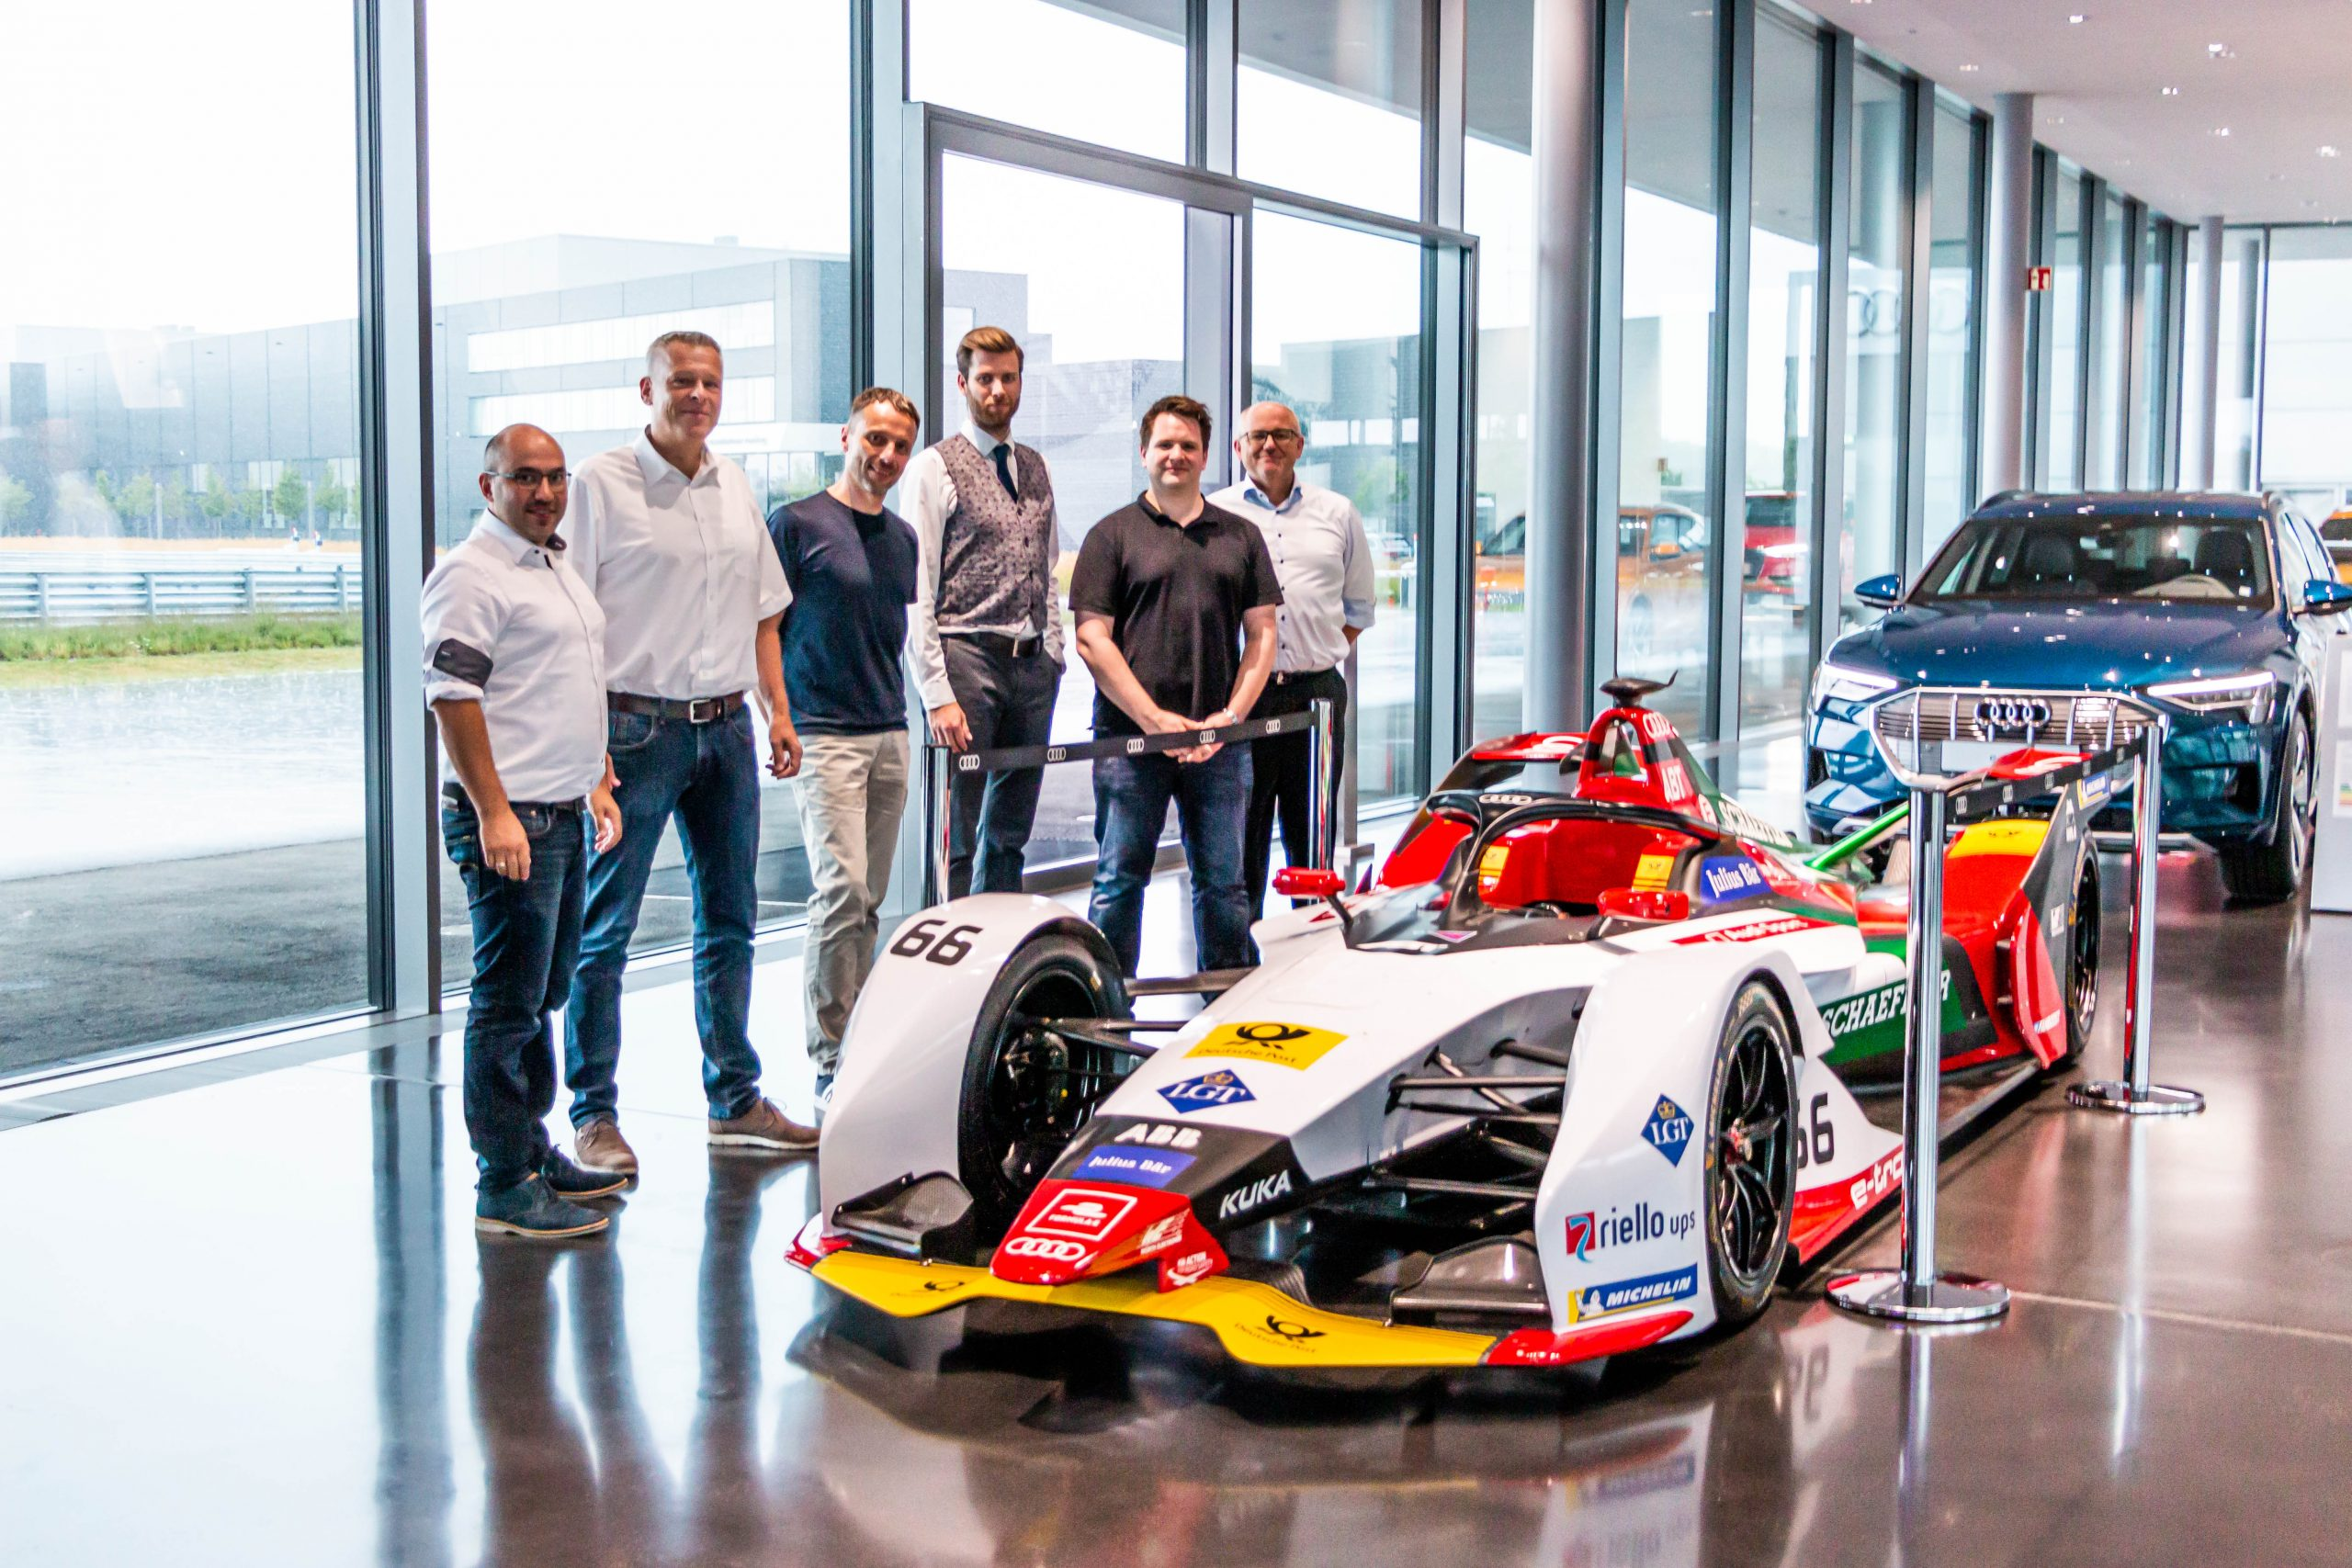 EDAG employees in front of a racing car